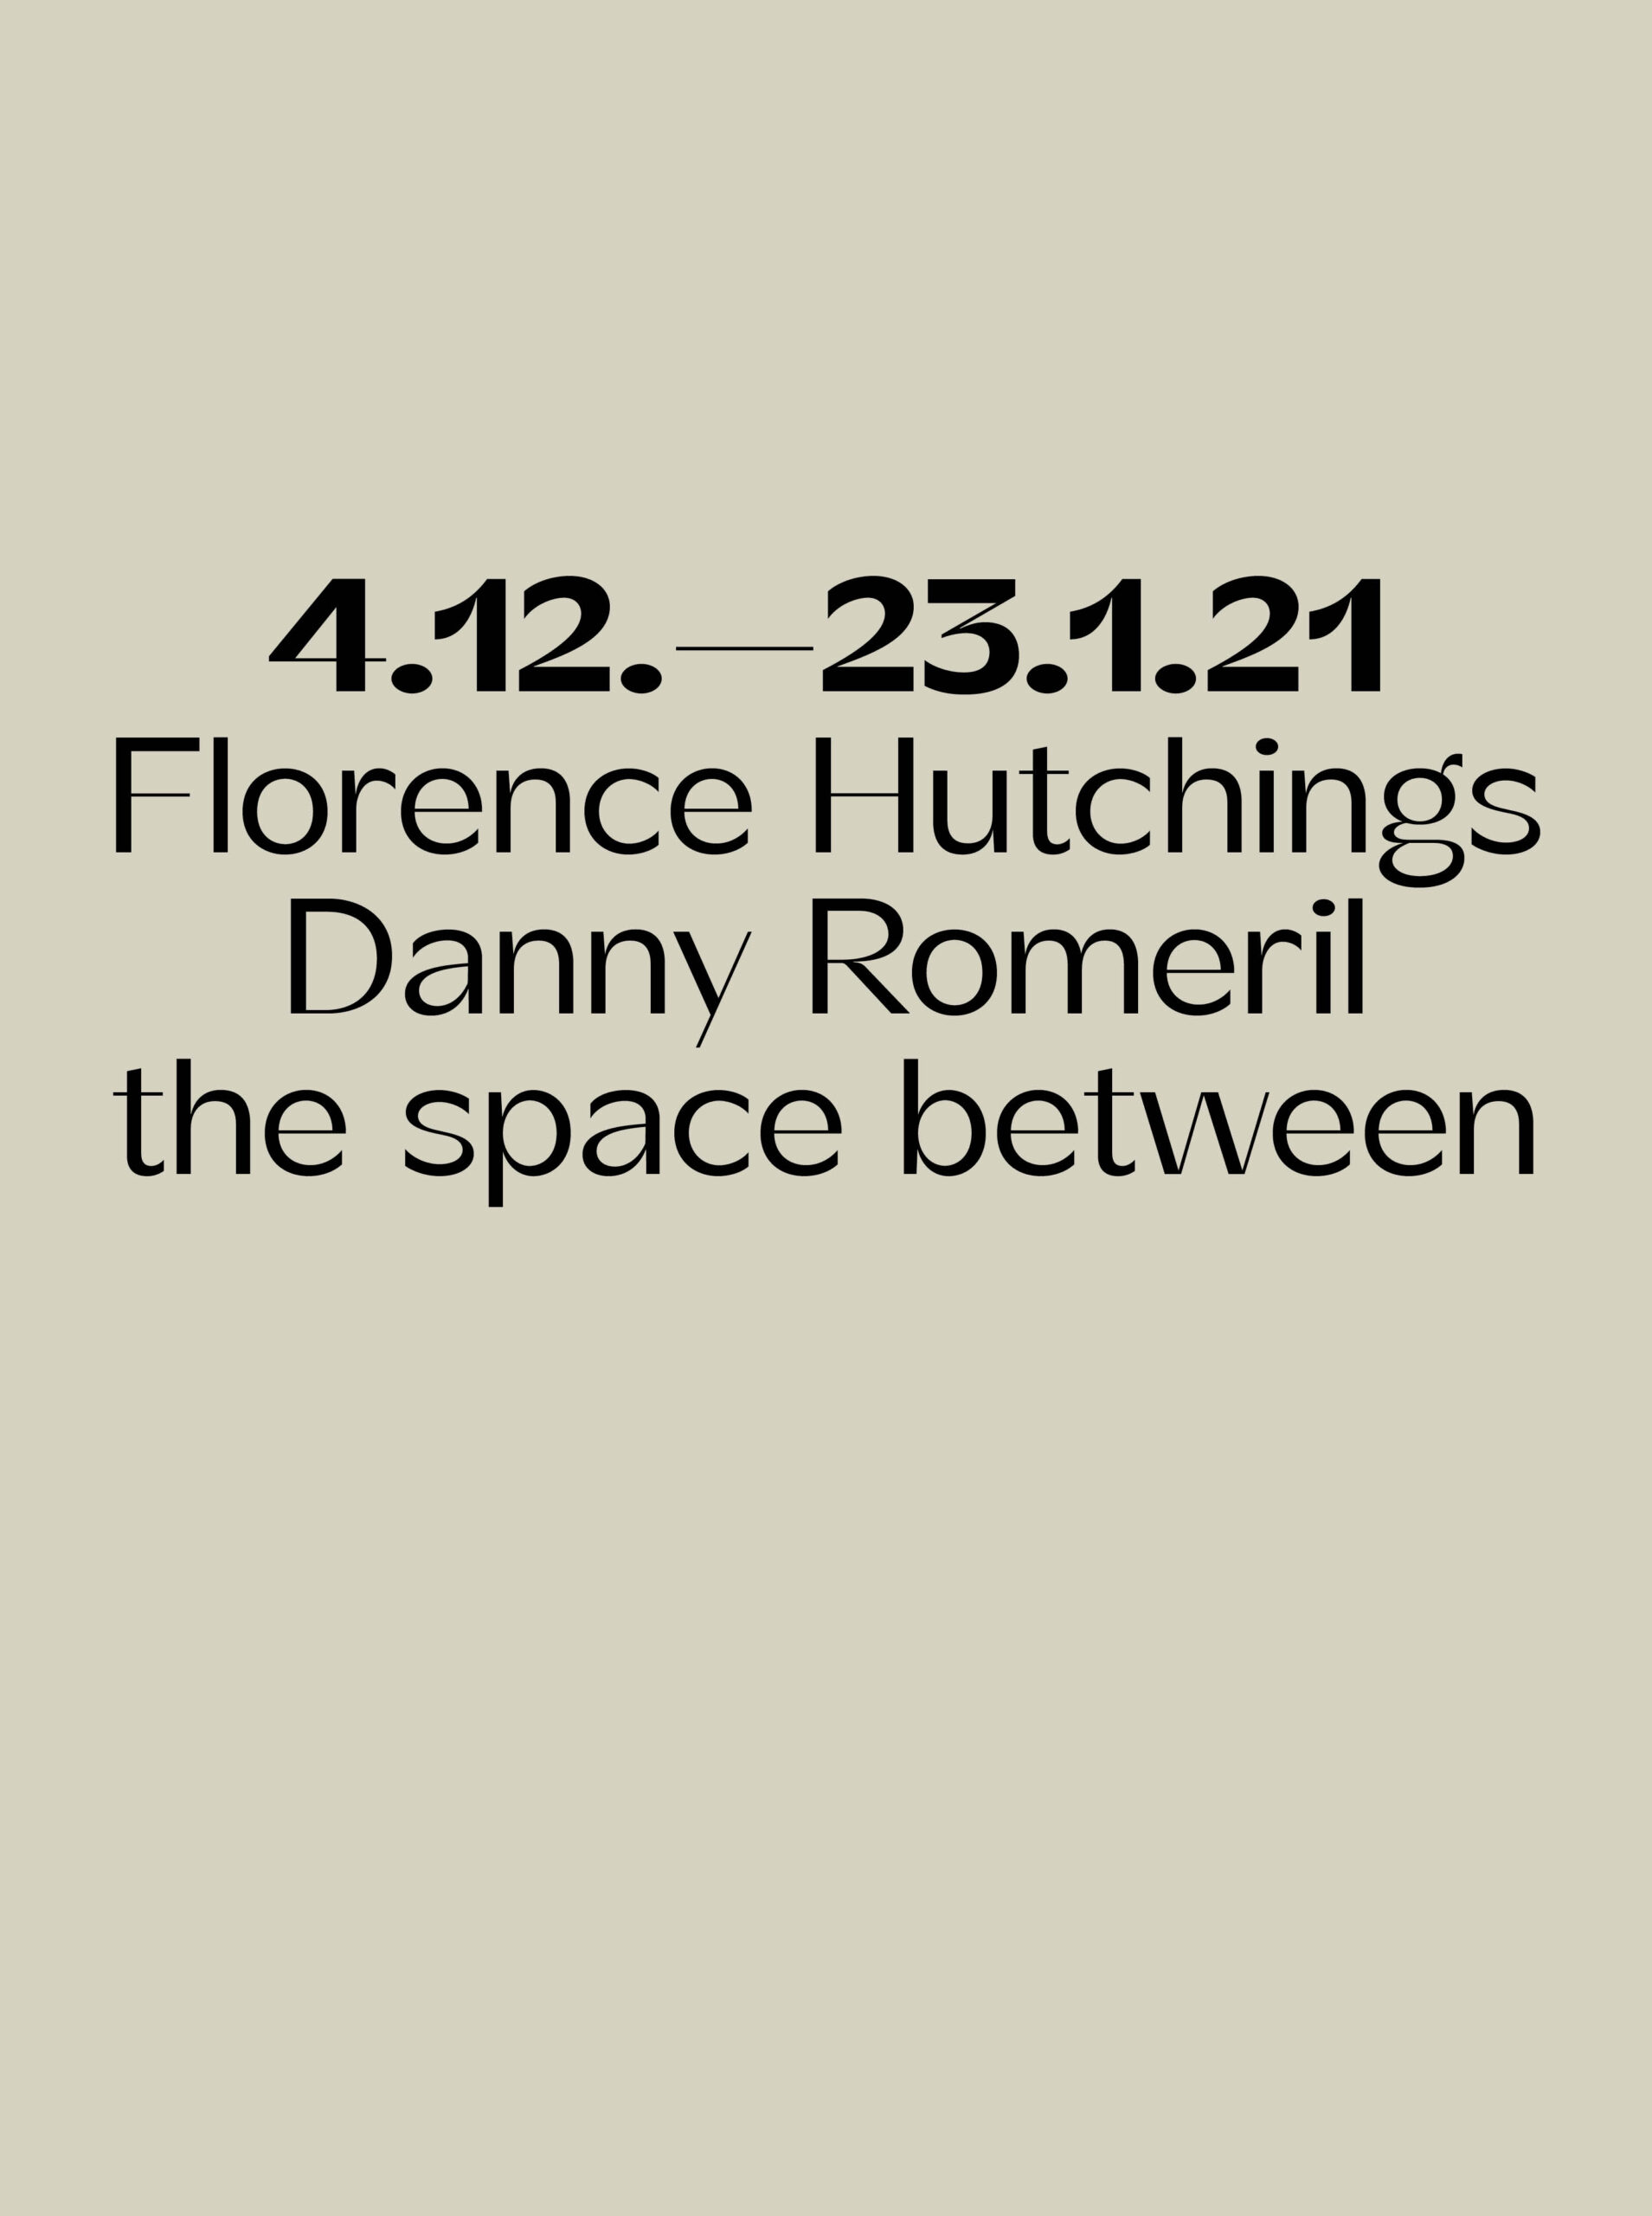 Florence Hutchings & Danny Romeril - the space between Text